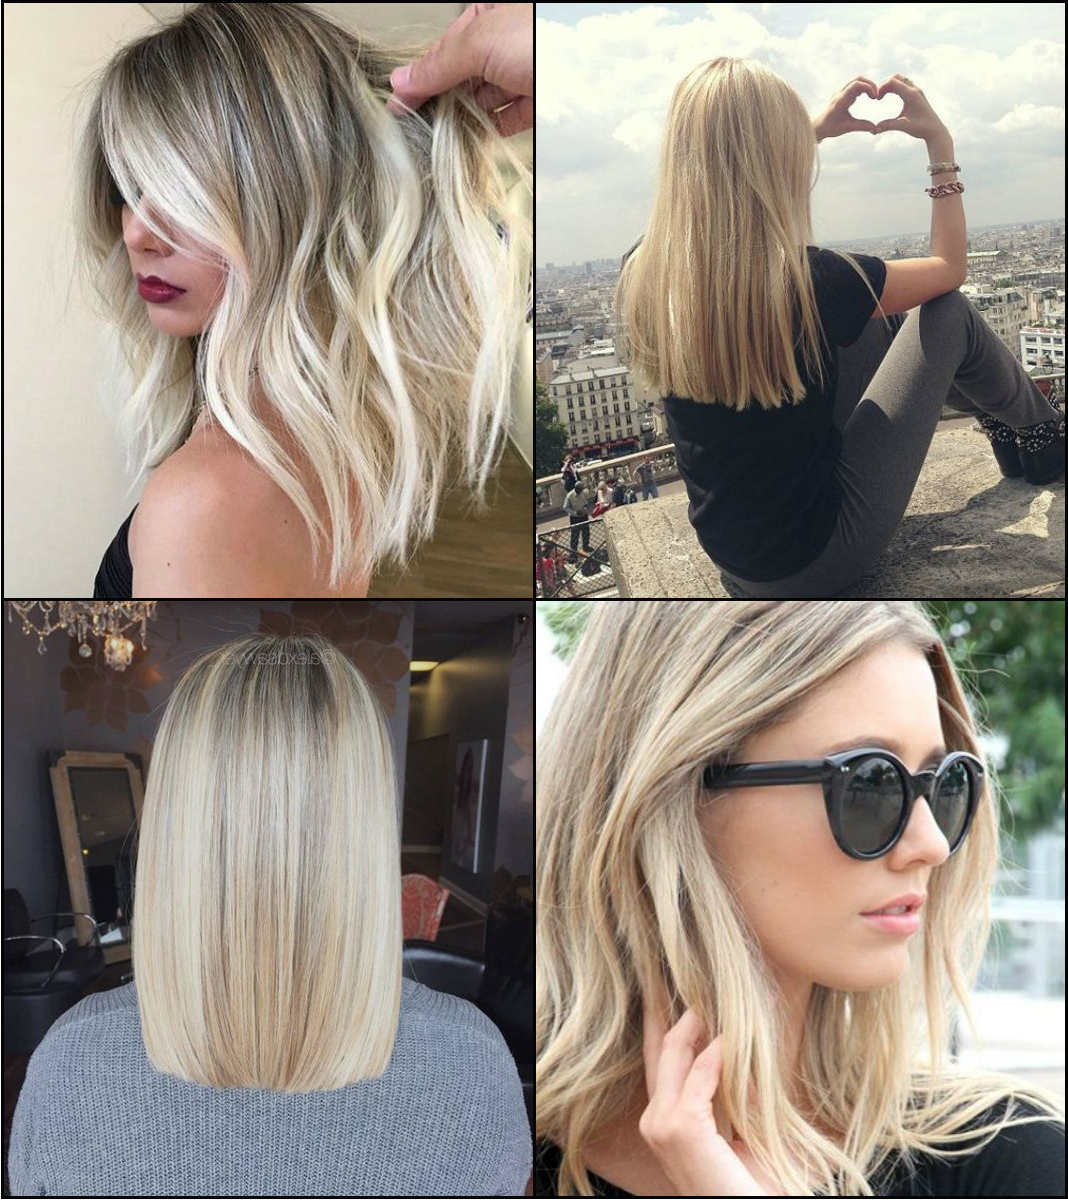 Hairstyles 2017, Hair Colors And Haircuts In 2017 Medium Hairstyles For Spring (View 9 of 20)